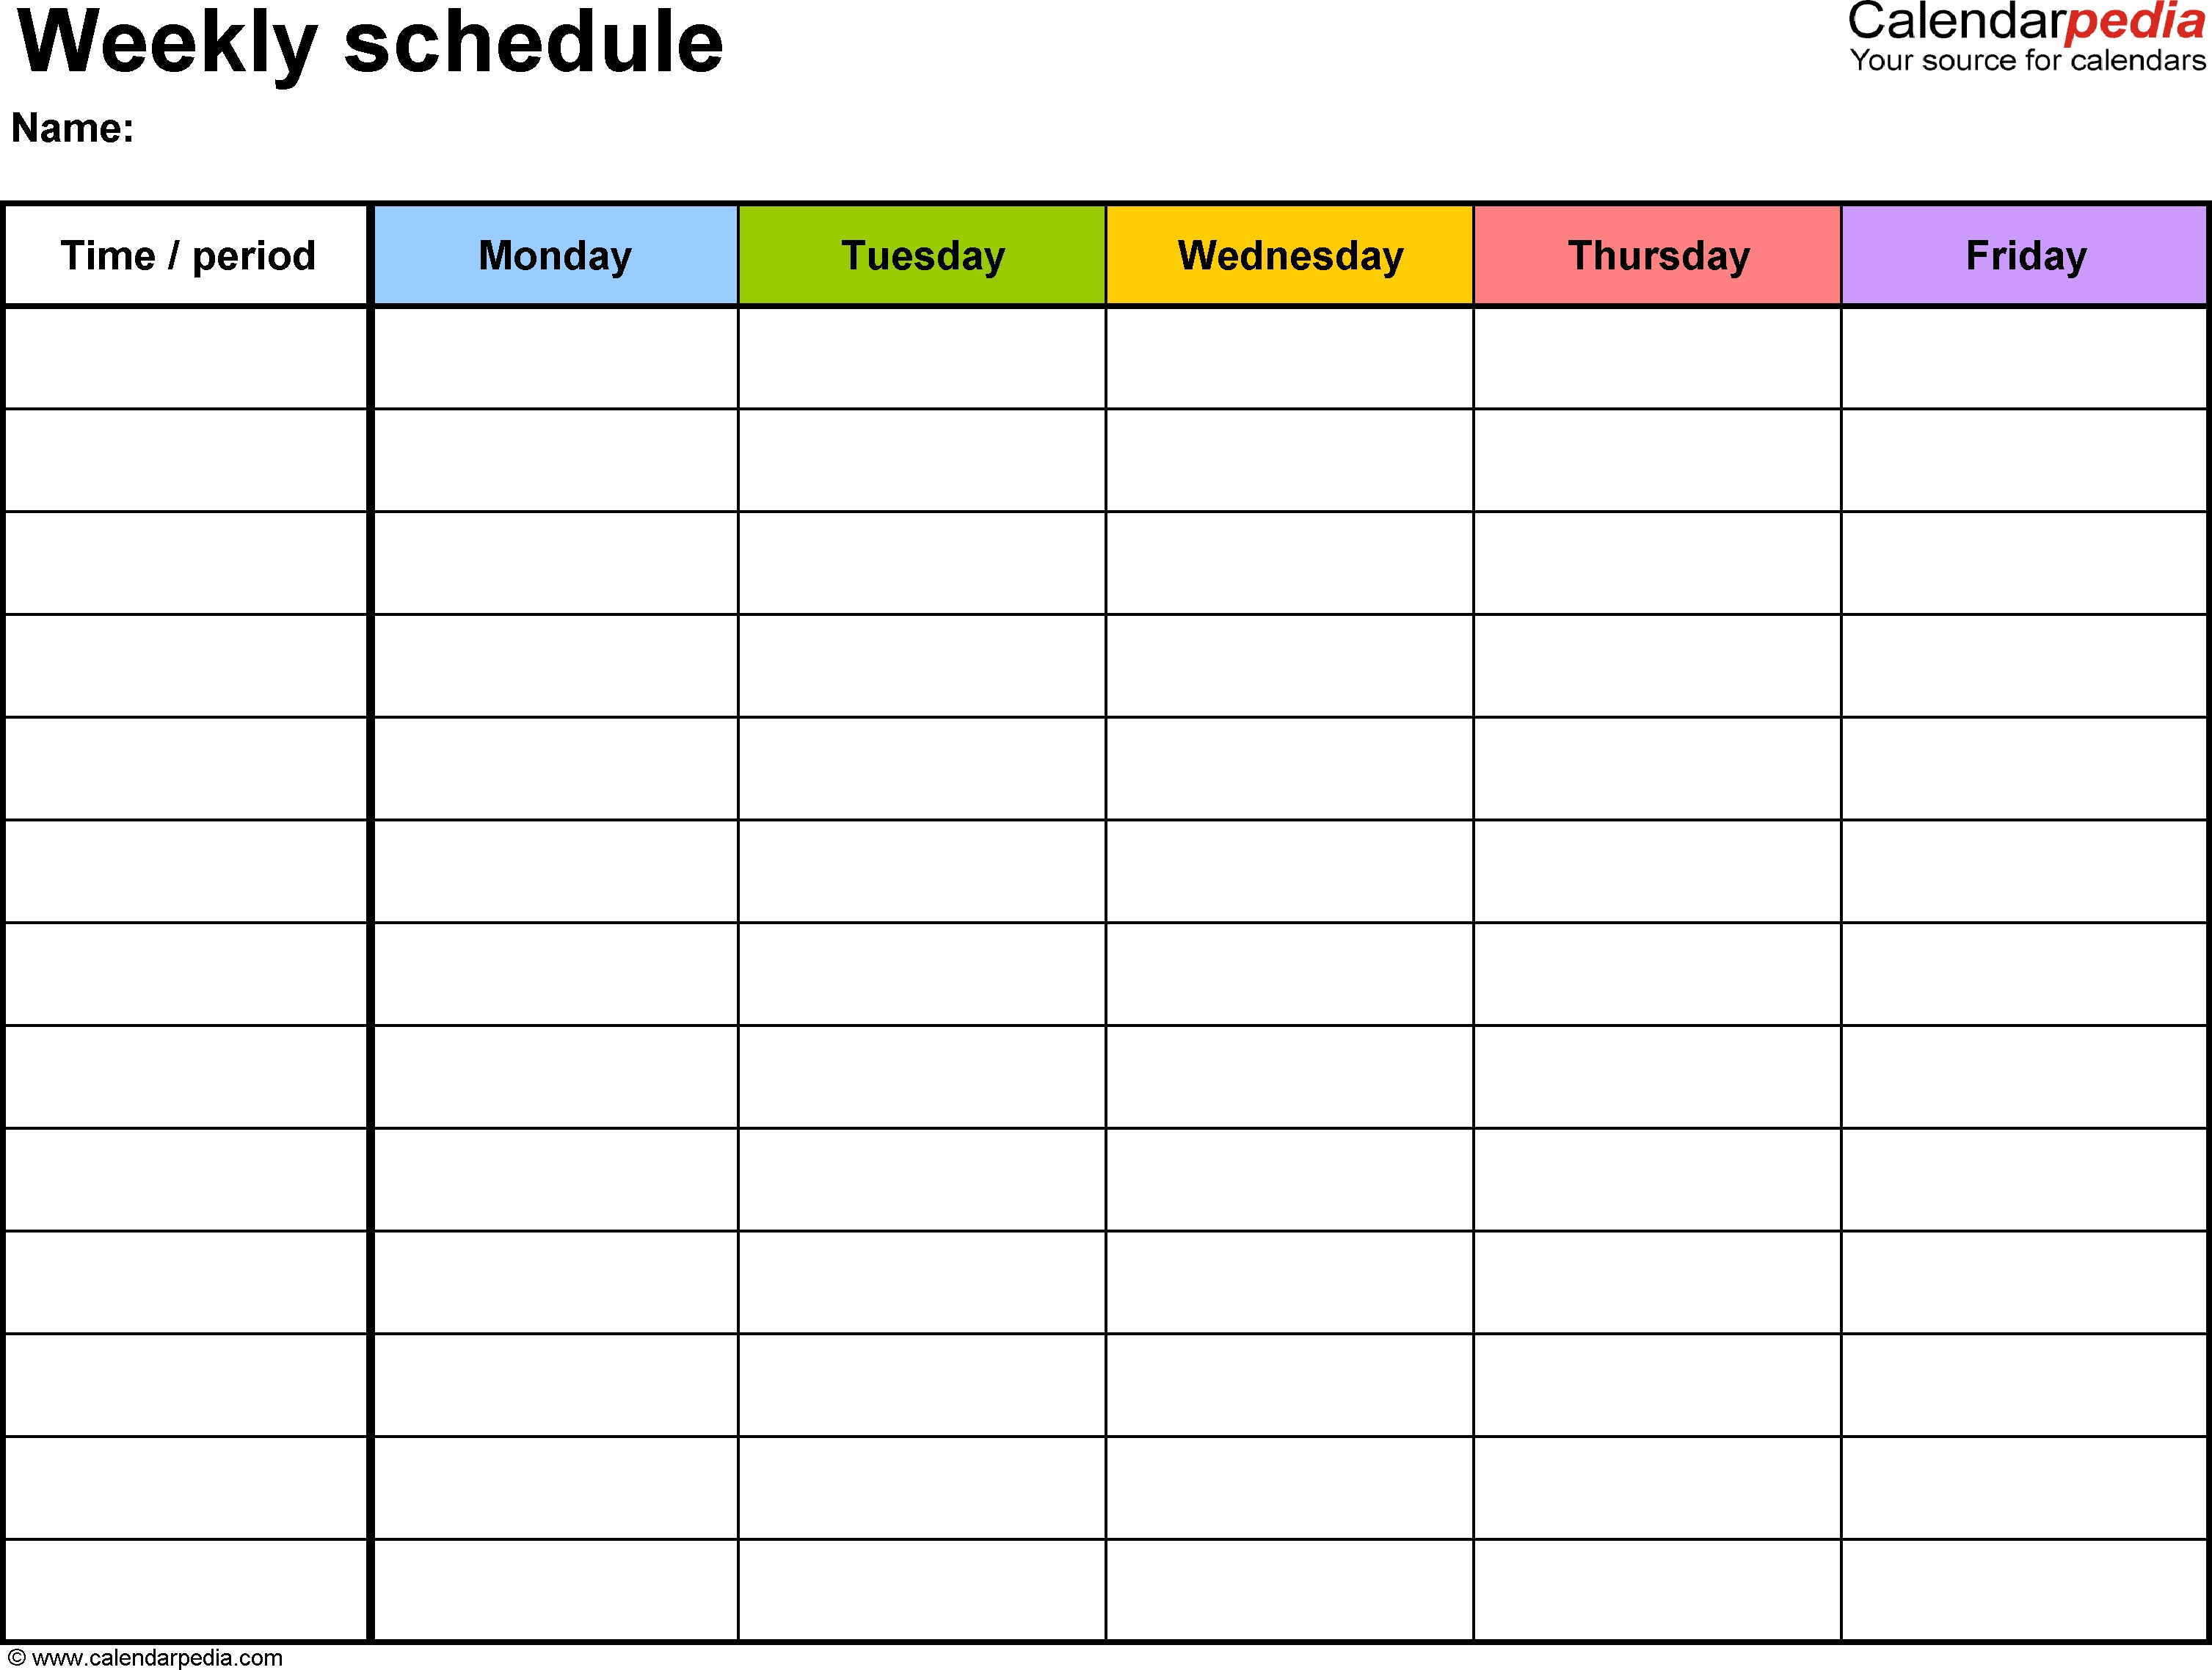 Free Weekly Schedule Templates For Excel - 18 Templates in Excel Calendar Template 6 Weeks